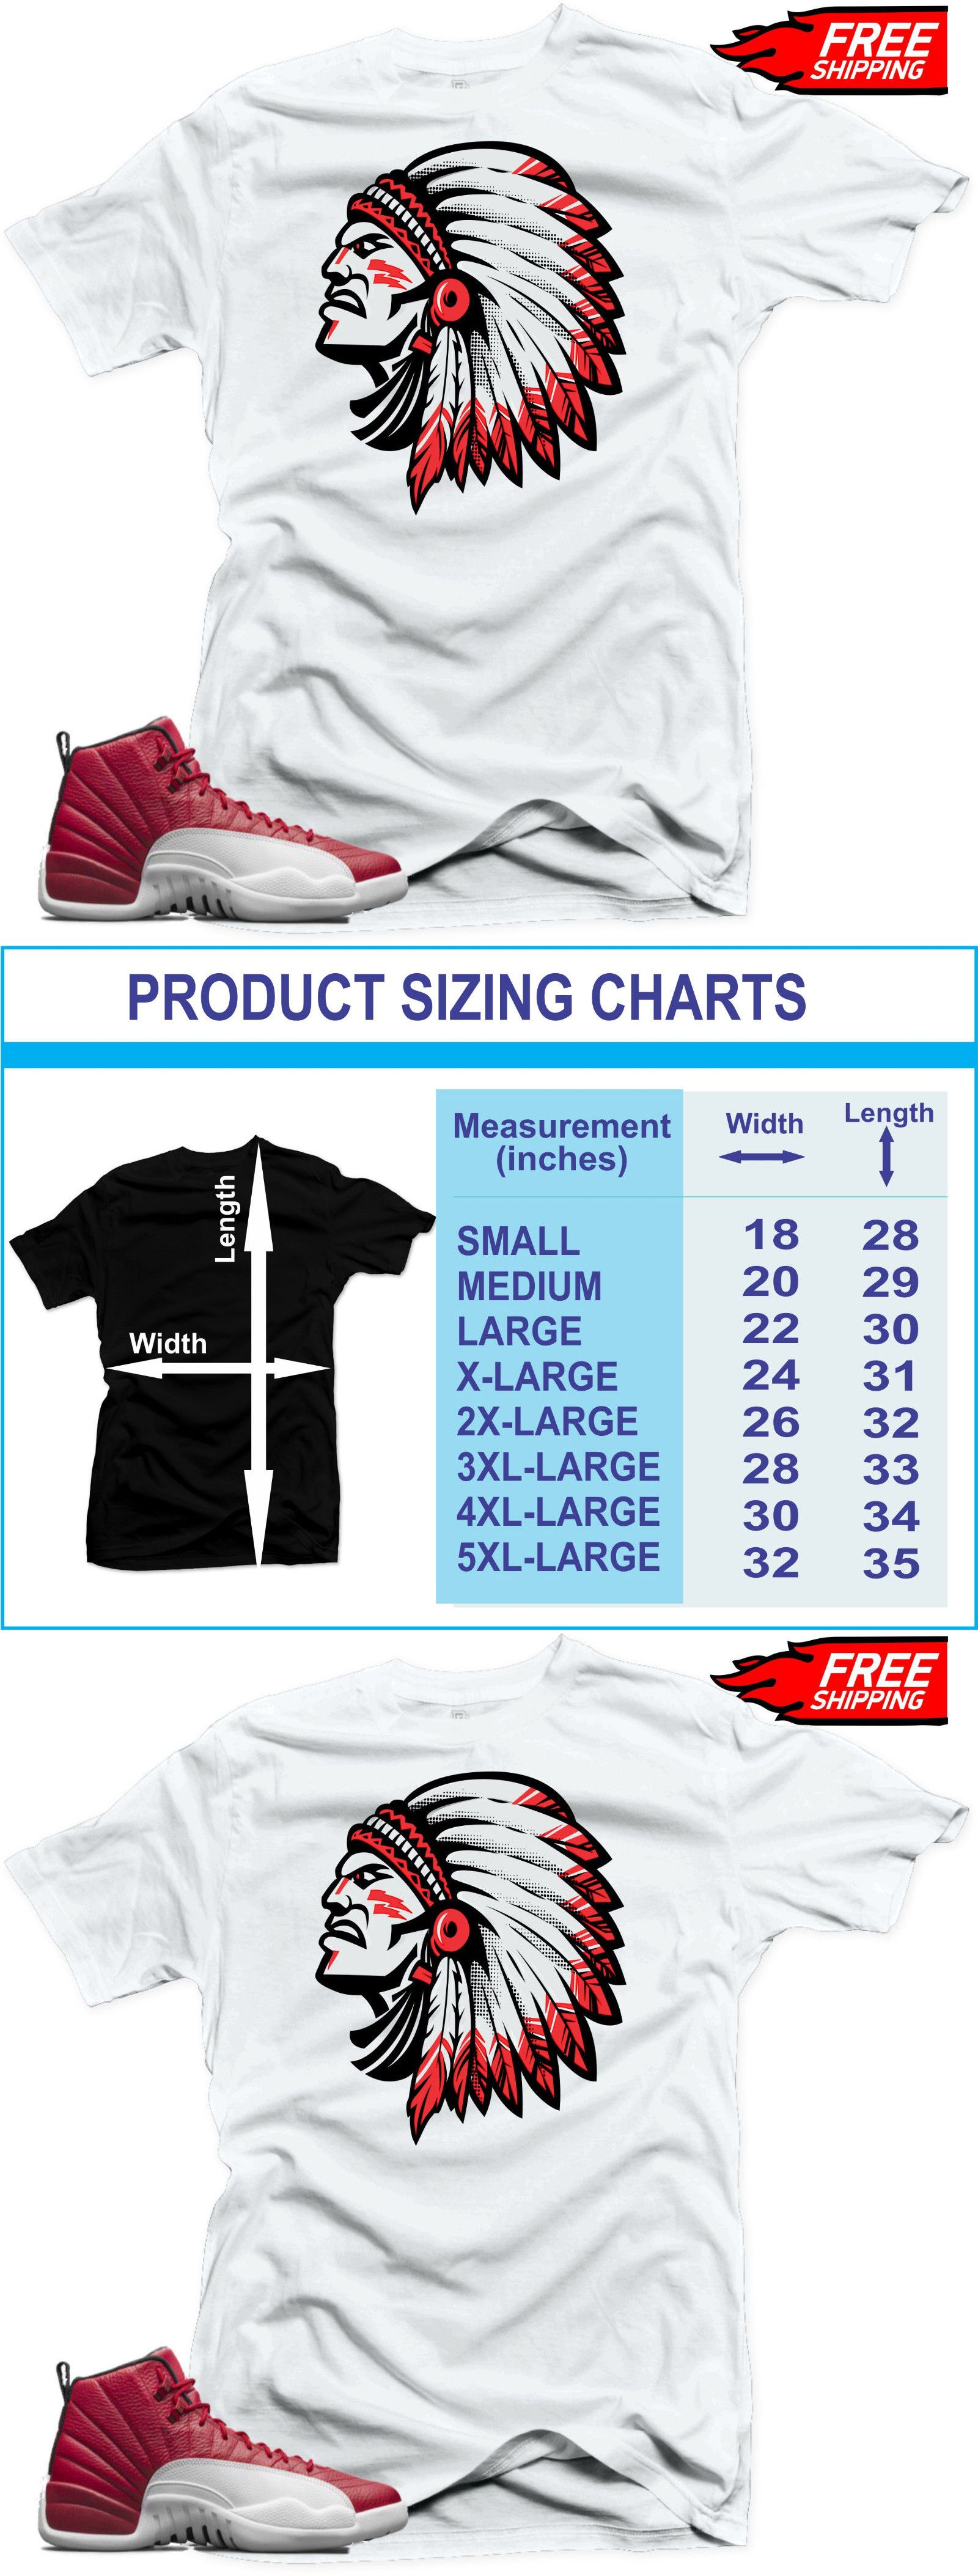 457264a629f57a Clothing Shoes and Accessories 158963  T-Shirt To Match Jordan Retro 12  Alternate Gym Red Sneakers Chief White Tee -  BUY IT NOW ONLY   26.32 on   eBay ...